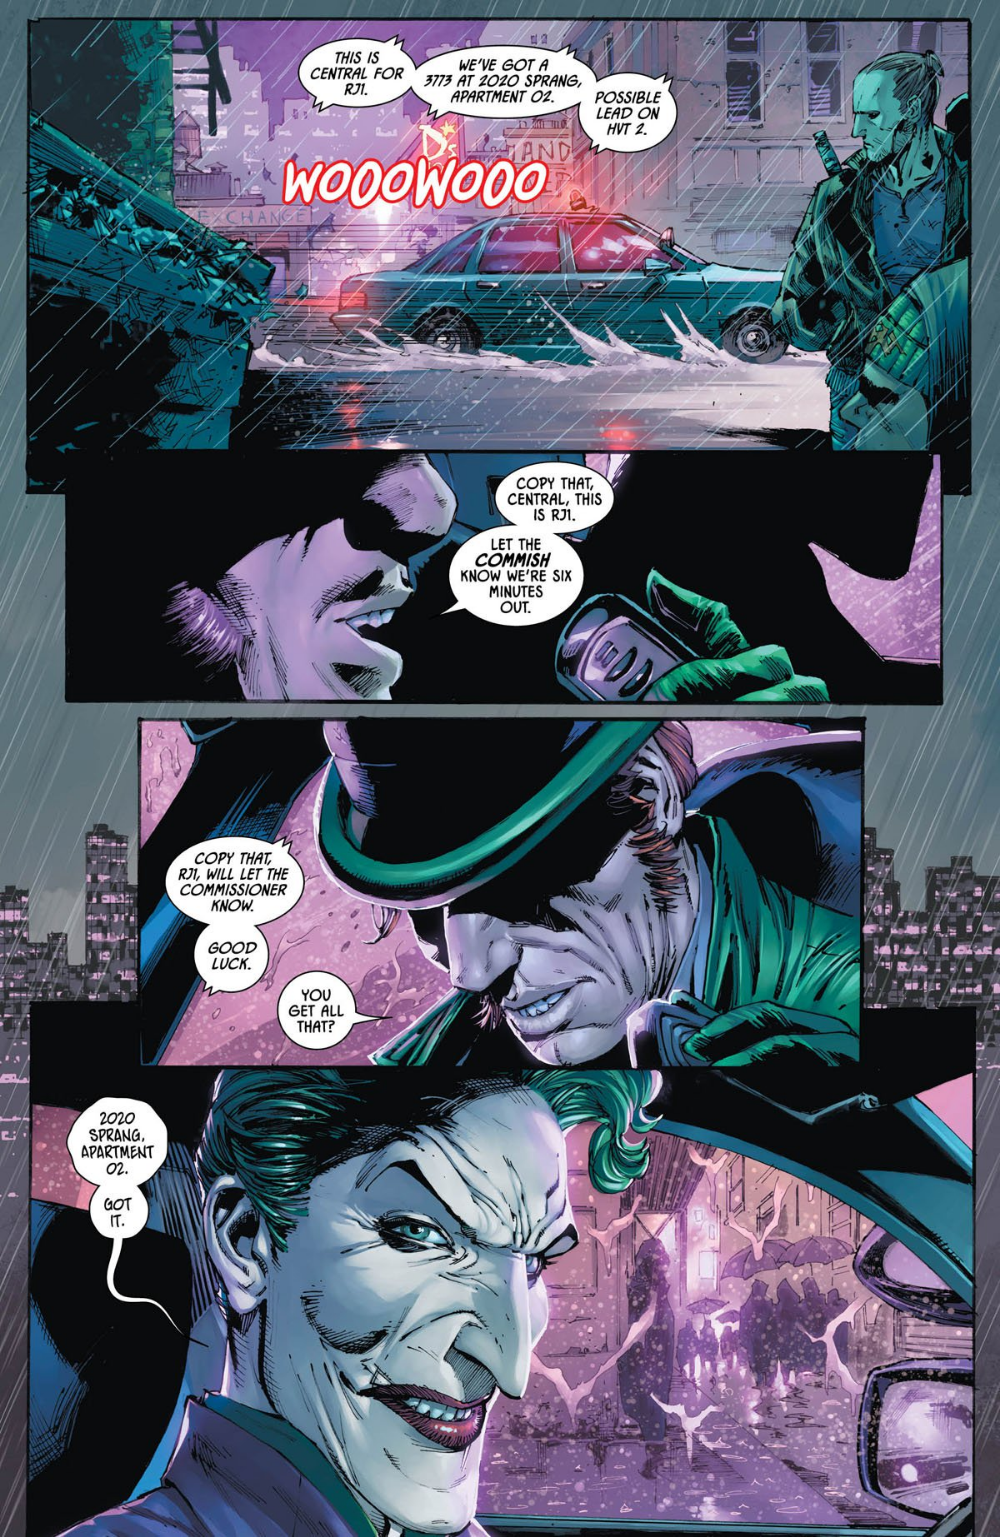 Joker And Riddler Team Up In First Look At Batman 75 Batman Riddler Digital Comic